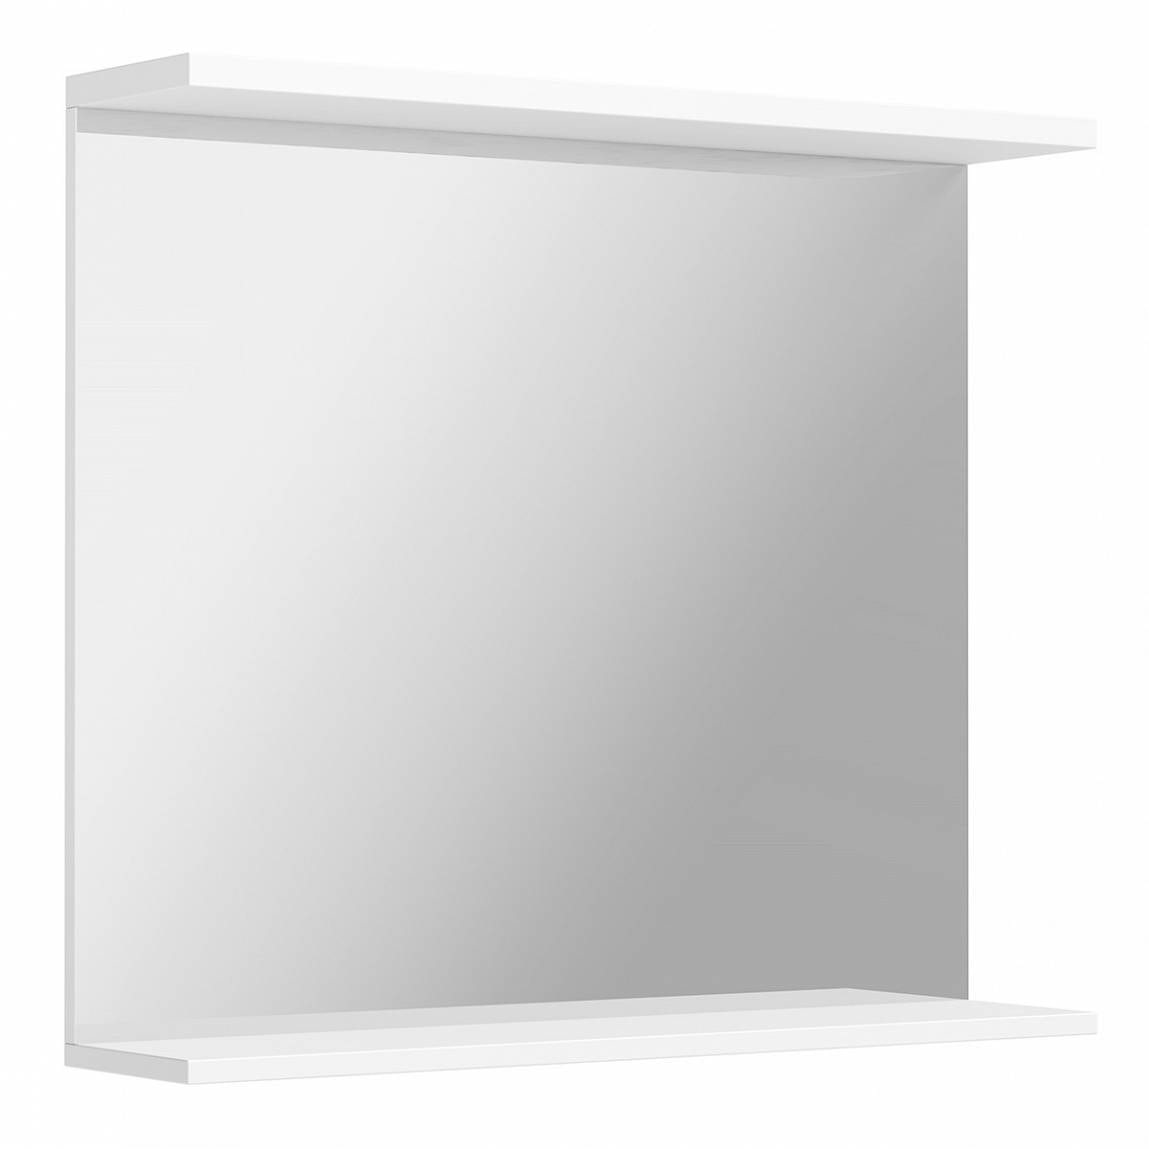 Orchard Florence white bathroom mirror 850mm